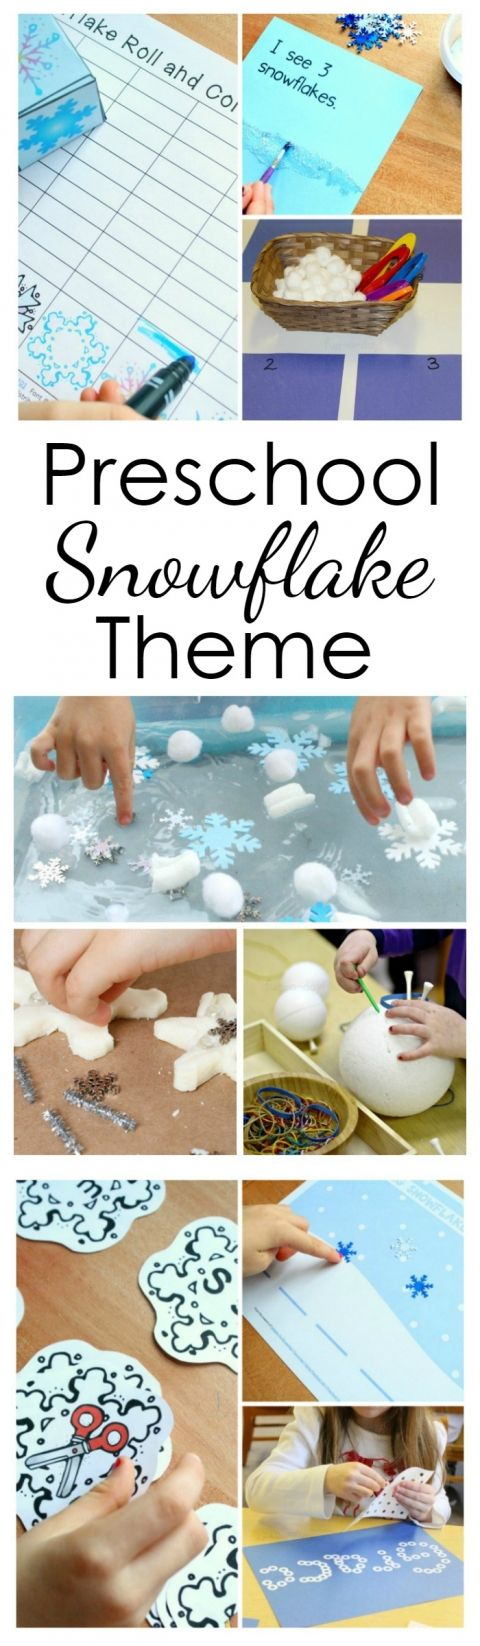 Use these preschool snowflake activities for a full week of playful winter learning at home or in the classroom.